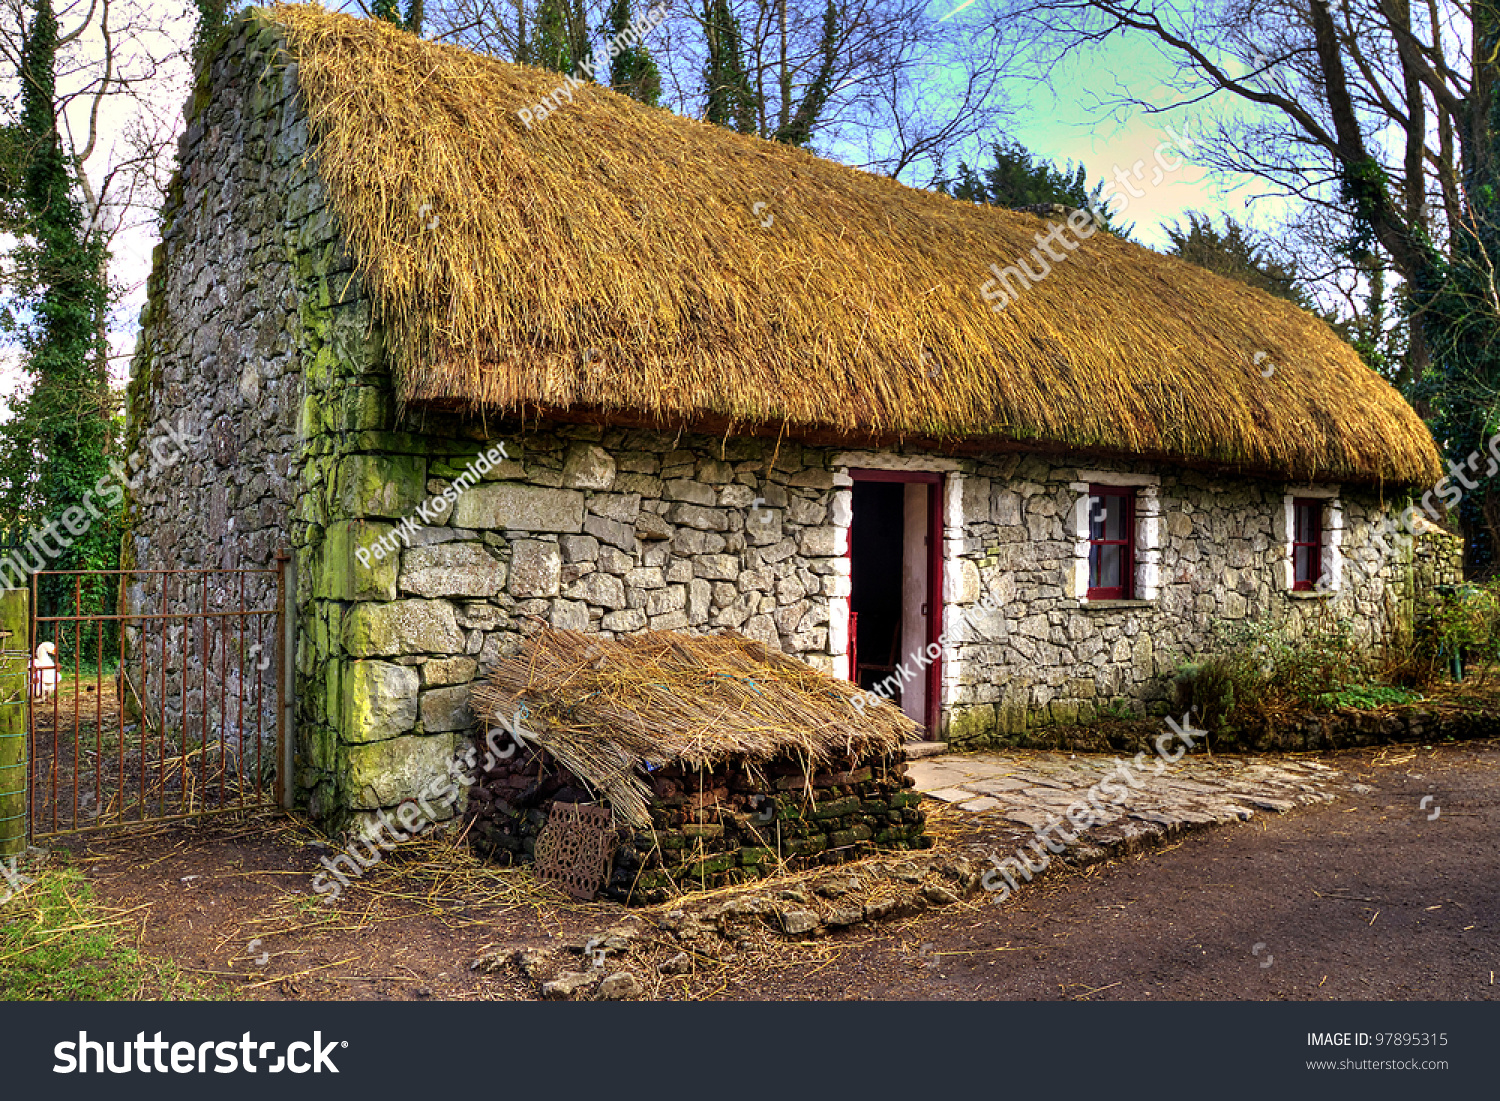 Pictures Of Old Irish Houses House And Home Design